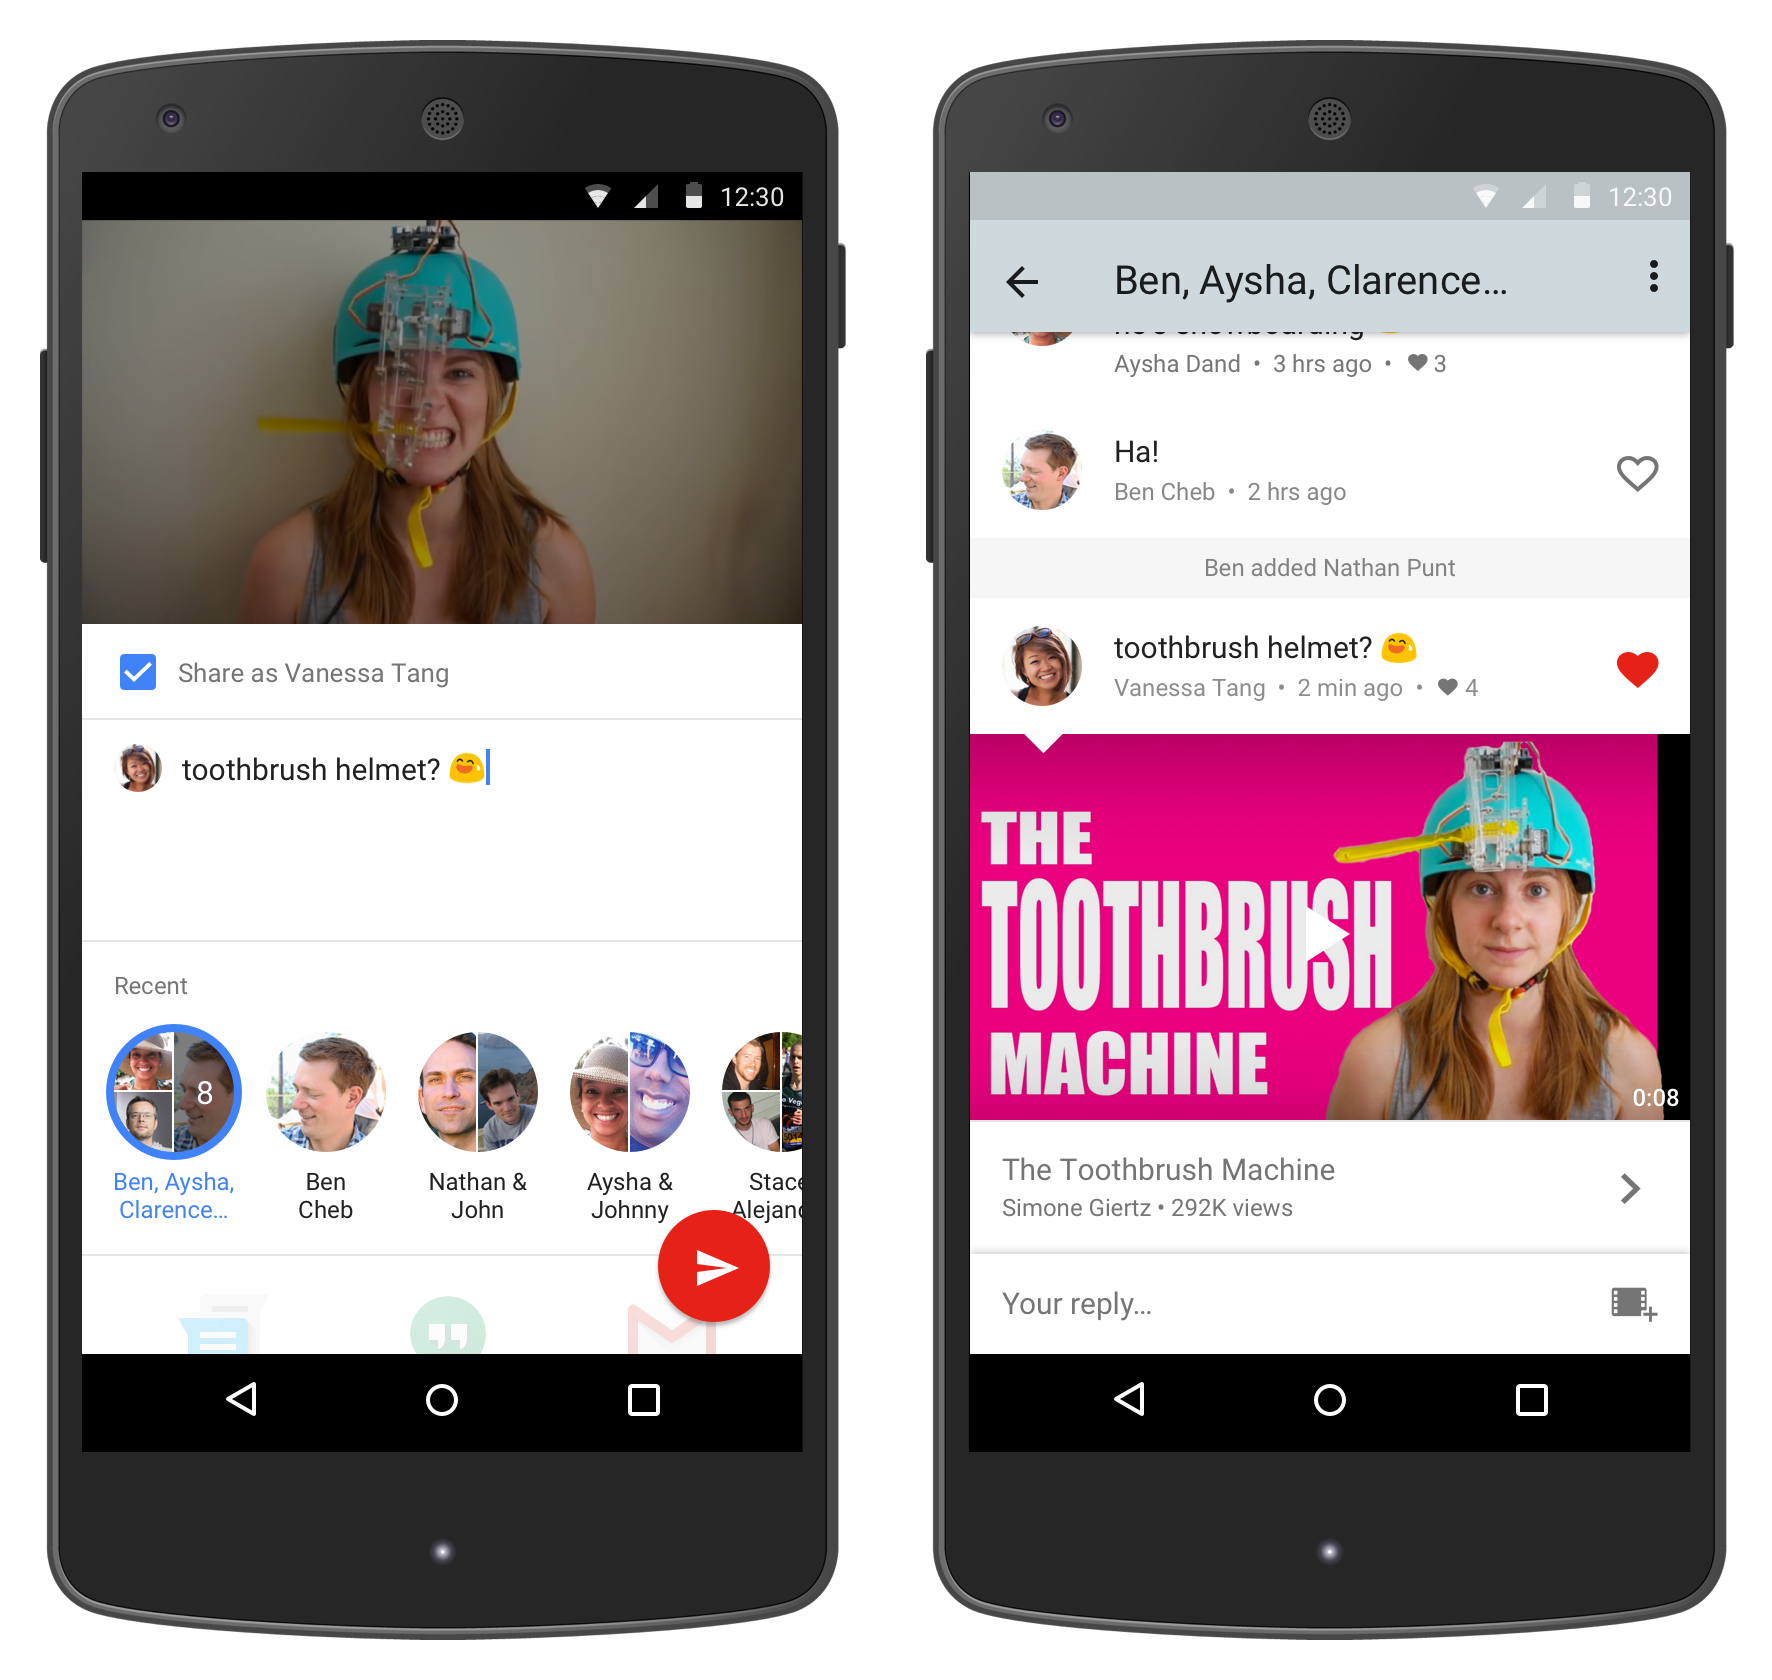 YouTube Adding A Messaging Tool To Its Mobile Apps